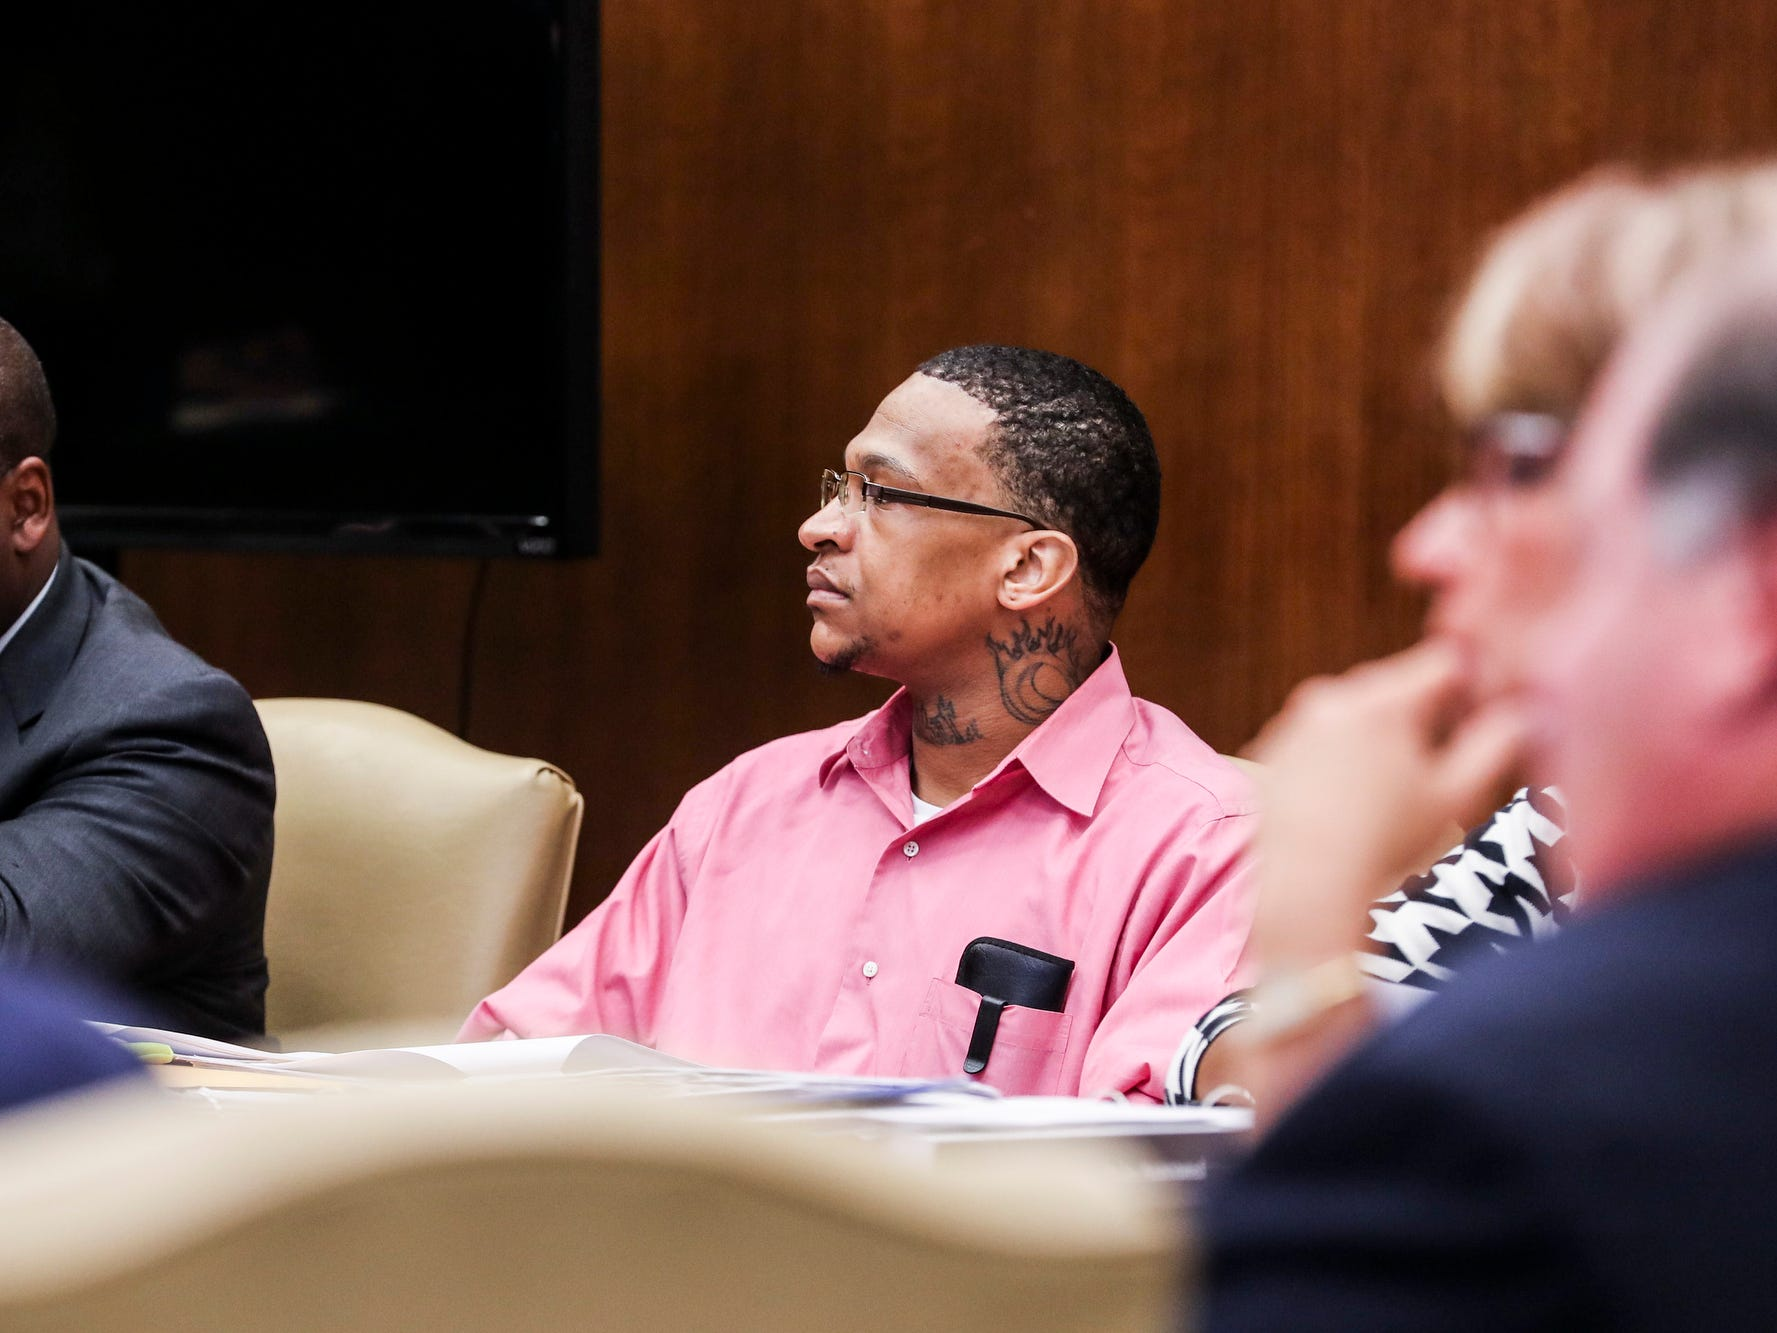 Quinton Tellis, right, is seen on the first day of his retrial in Batesville, Miss., Tuesday, Sept. 25 2018. Tellis is charged with burning 19-year-old Jessica Chambers to death almost three years ago on Dec. 6, 2014. Tellis has pleaded not guilty to the murder. (Brad Vest/The Commercial Appeal via AP, Pool)